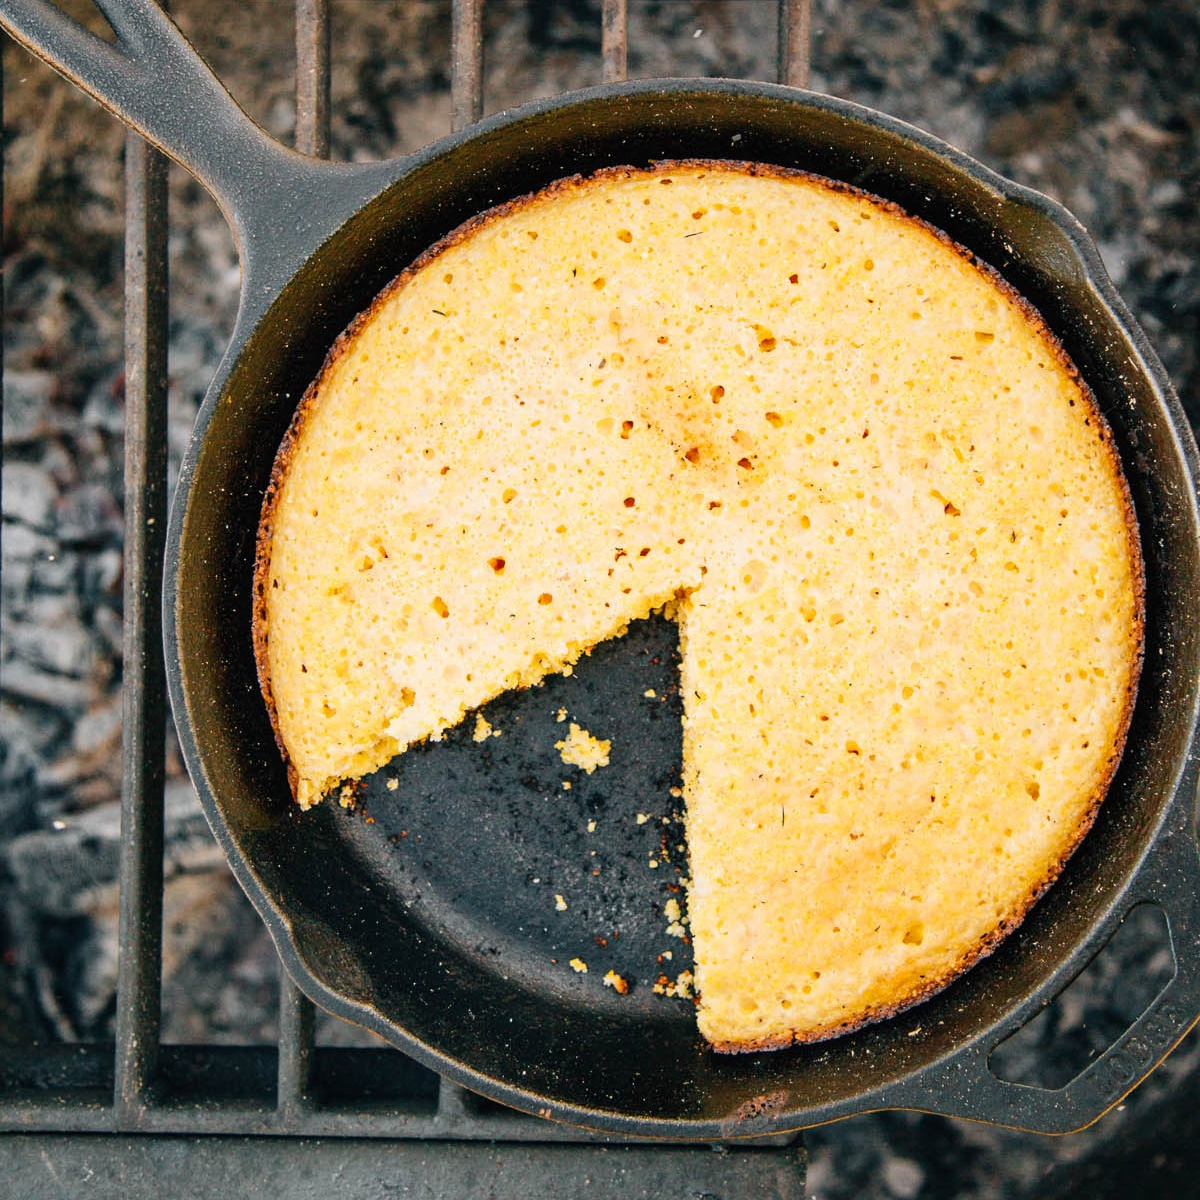 Cornbread with a slice taken out in a cast iron skillet